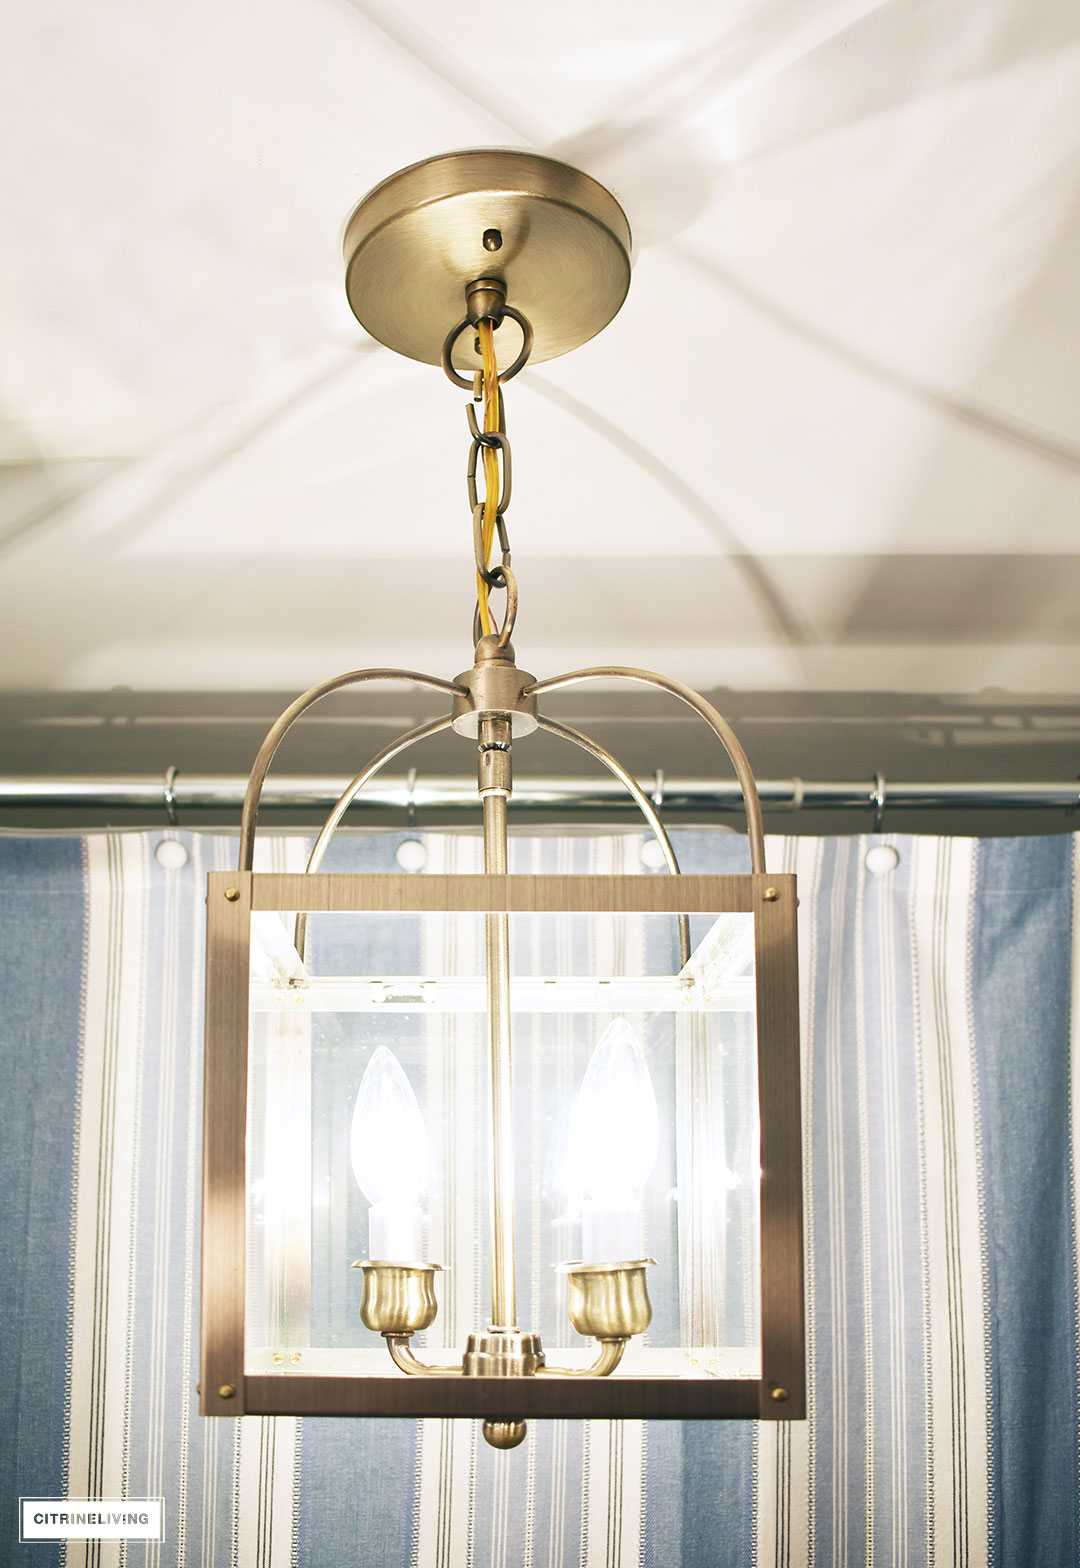 A timeless blue and white bathroom makeover featuring grasscloth, brass lighting, a blue and white striped shower curtain and blue and white accessories creates a sophisticated and elegant look in this small bath.